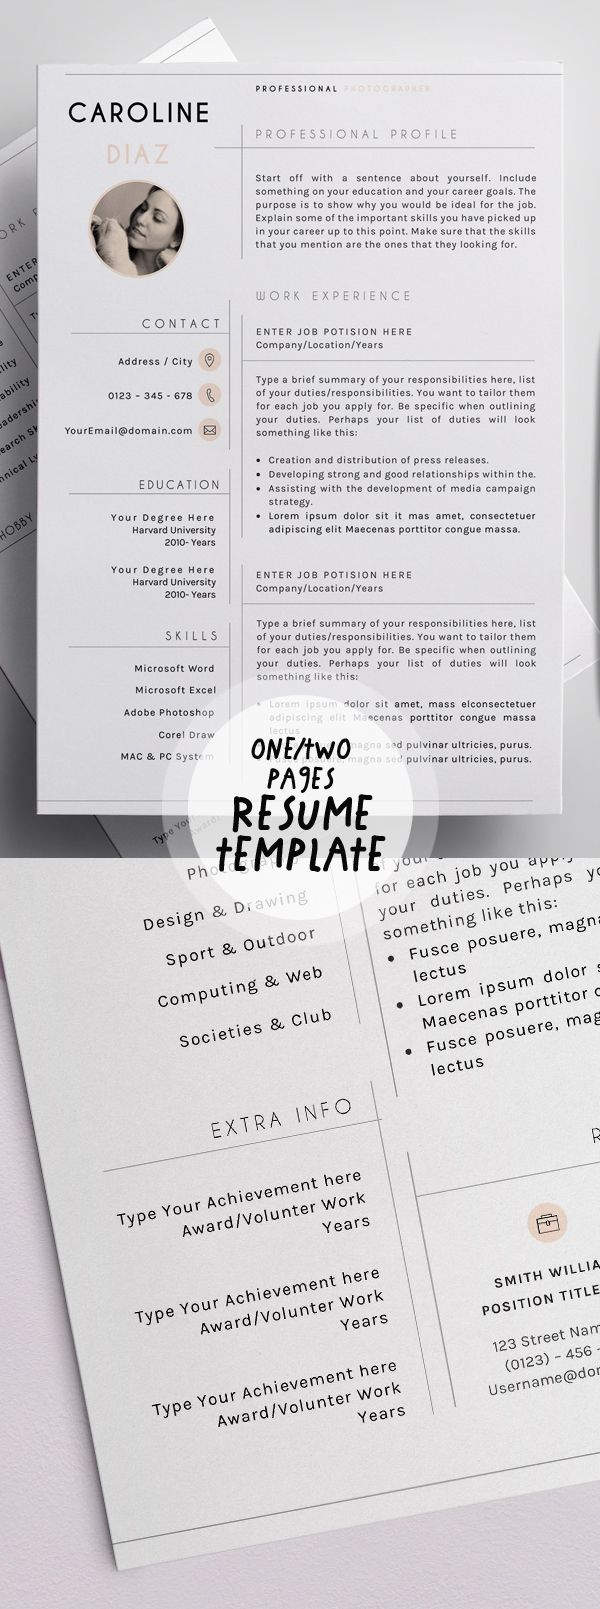 2018 Resume Templates 40 Best School Images On Pinterest  Resume Templates Resume And